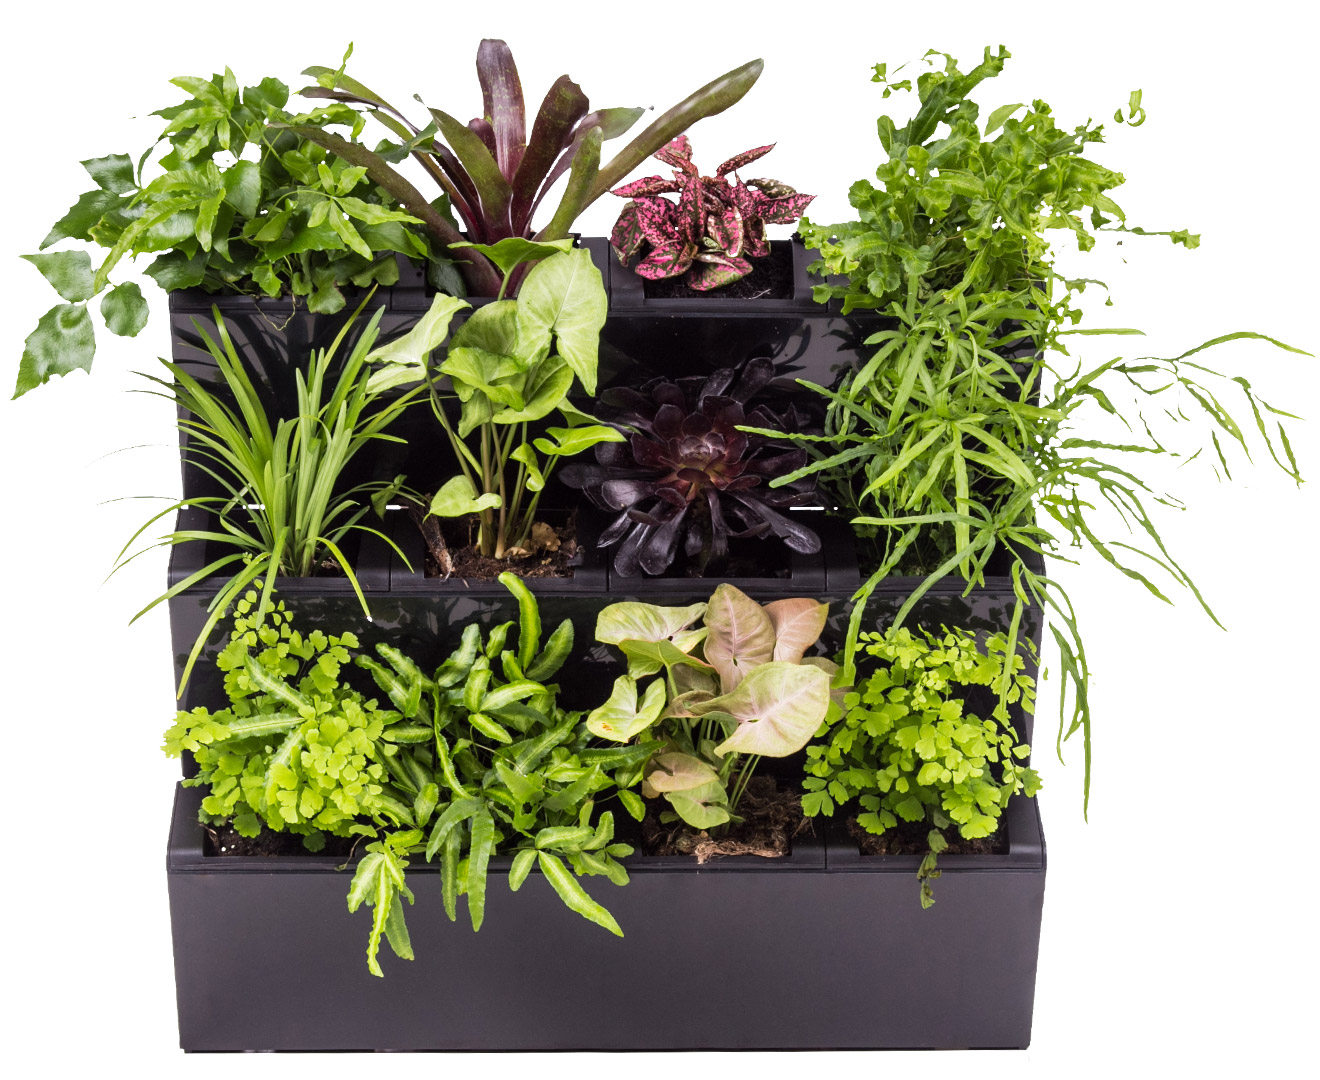 Awesome Catch.com.au | Hills Self Watering Garden Wall 3 Pack